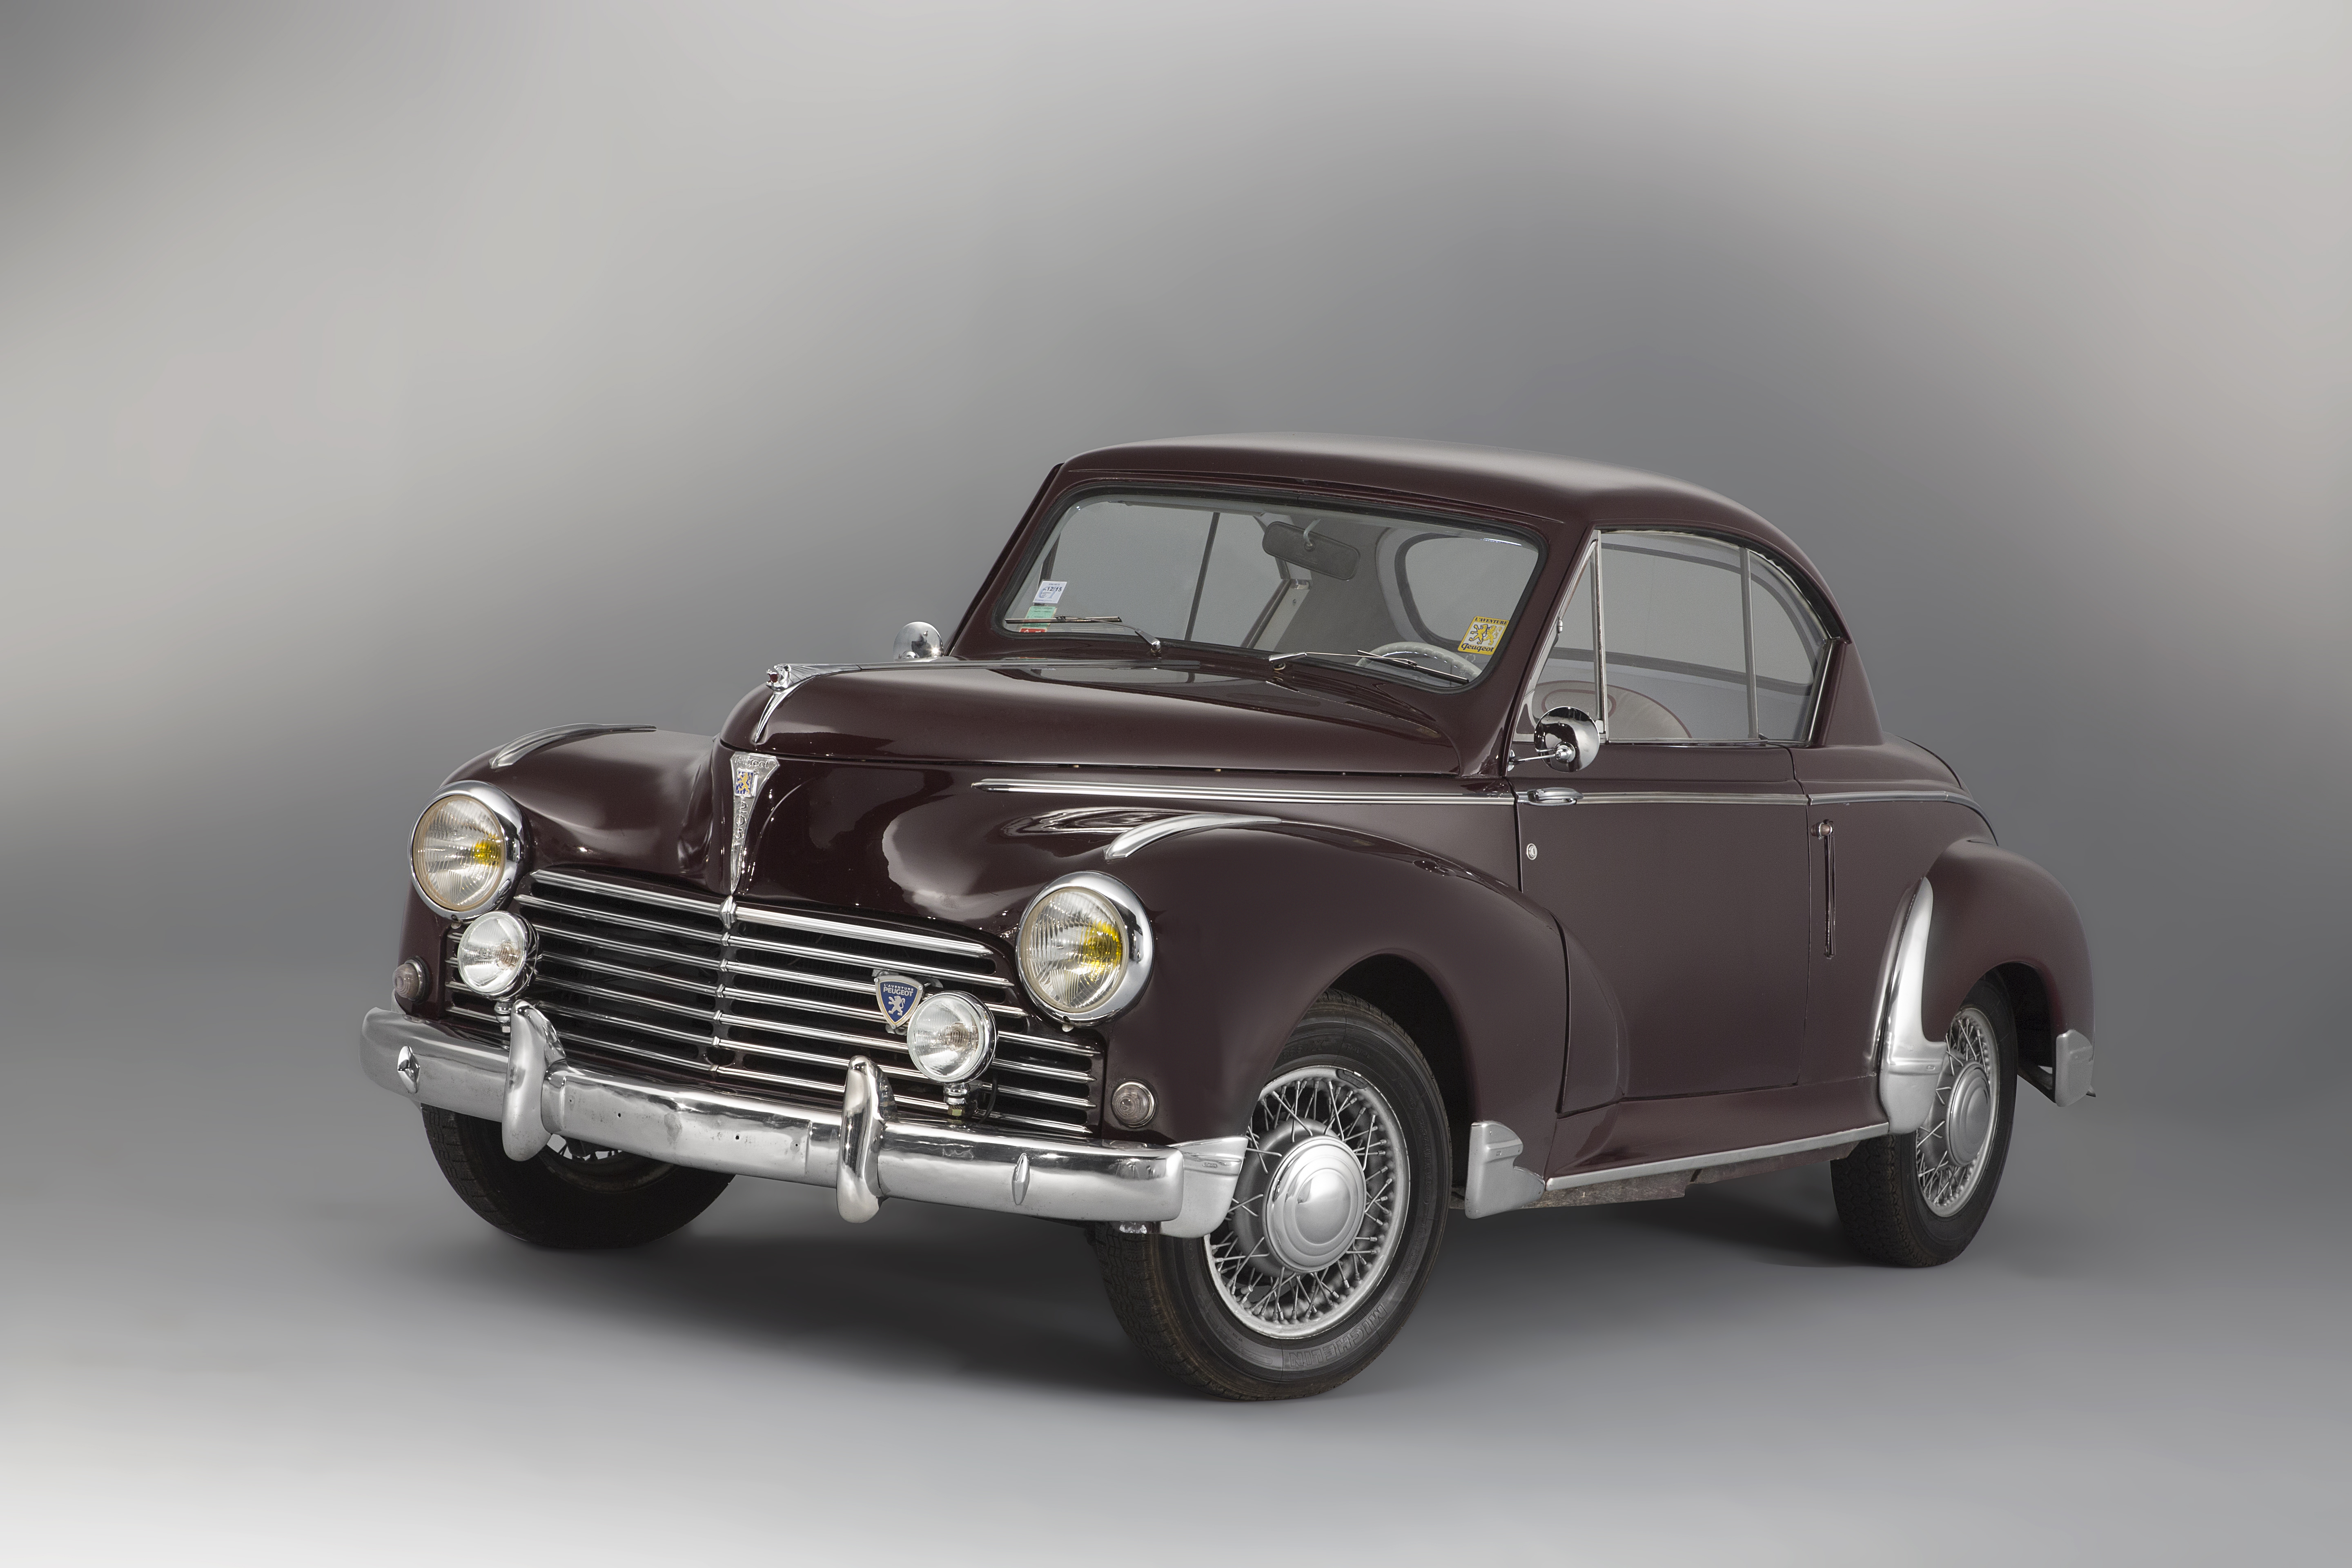 1952 peugeot 203 a coup classic driver market. Black Bedroom Furniture Sets. Home Design Ideas